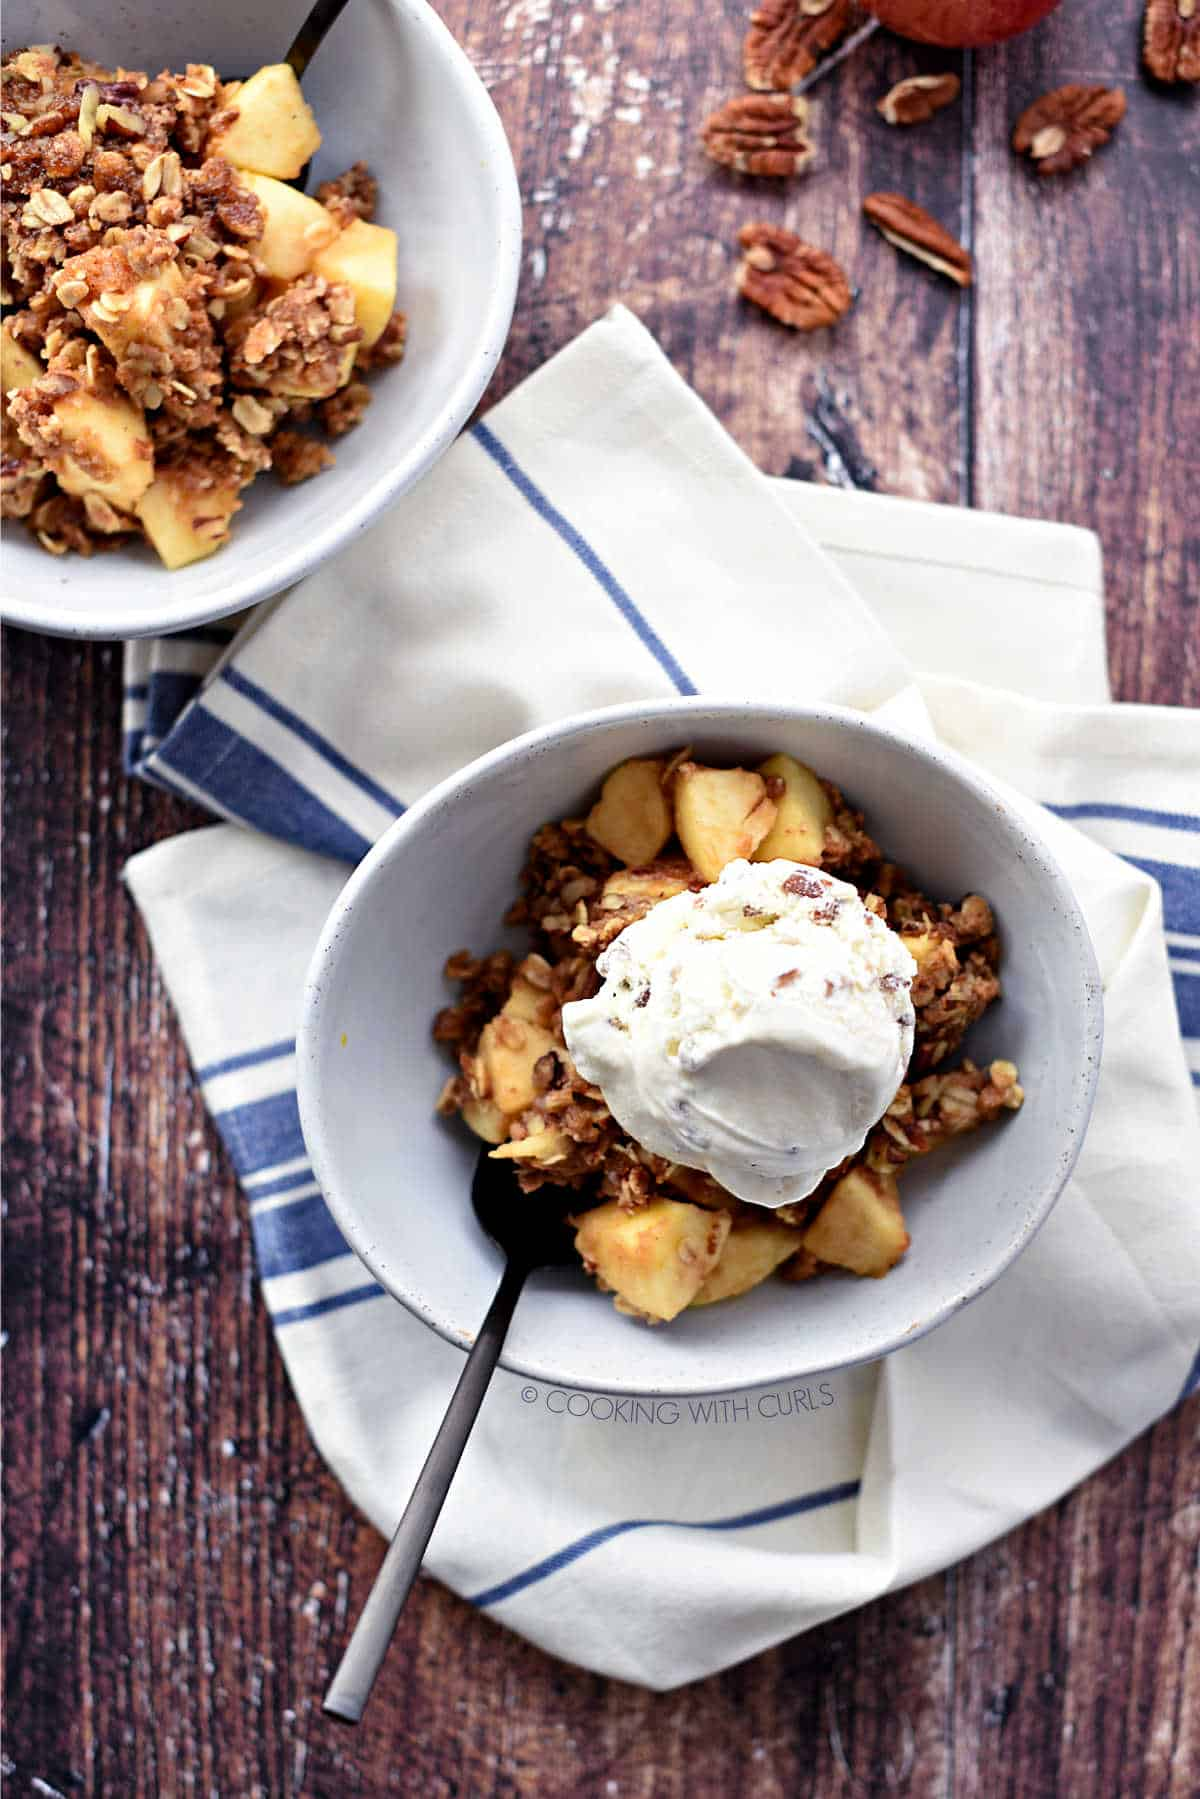 looking down on two white bowls with apple crisp. One is topped with a scoop of ice cream and a black spoon, sitting on a beige and blue striped napkin, the other is plain.